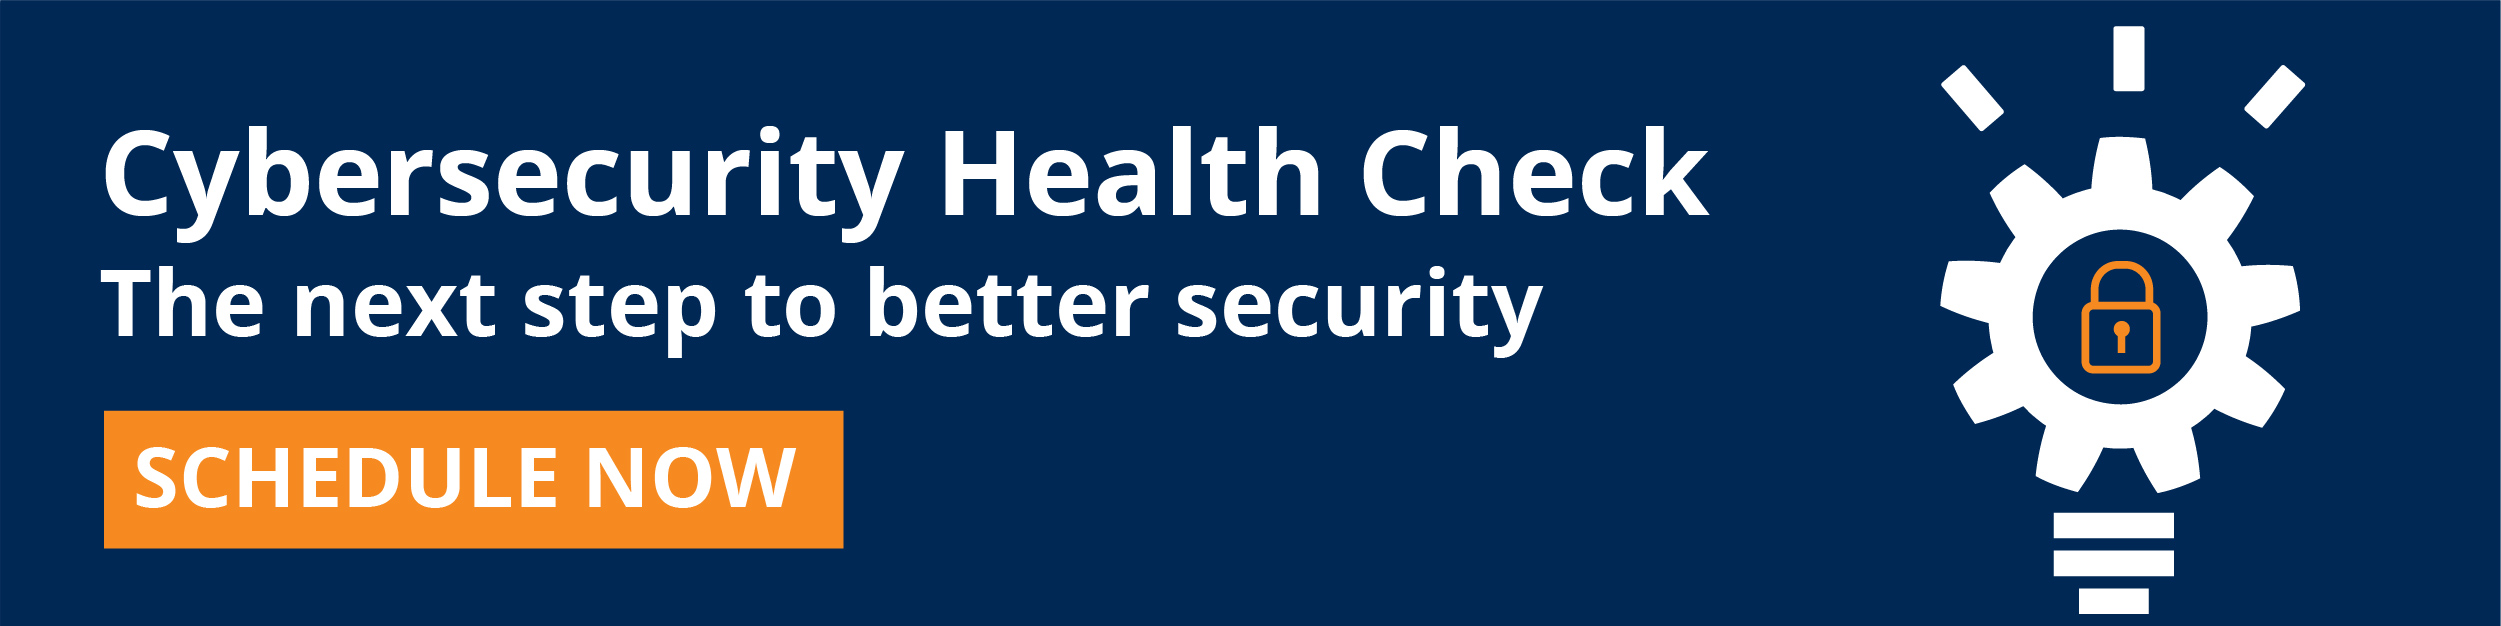 Schedule a cybersecurity health check.